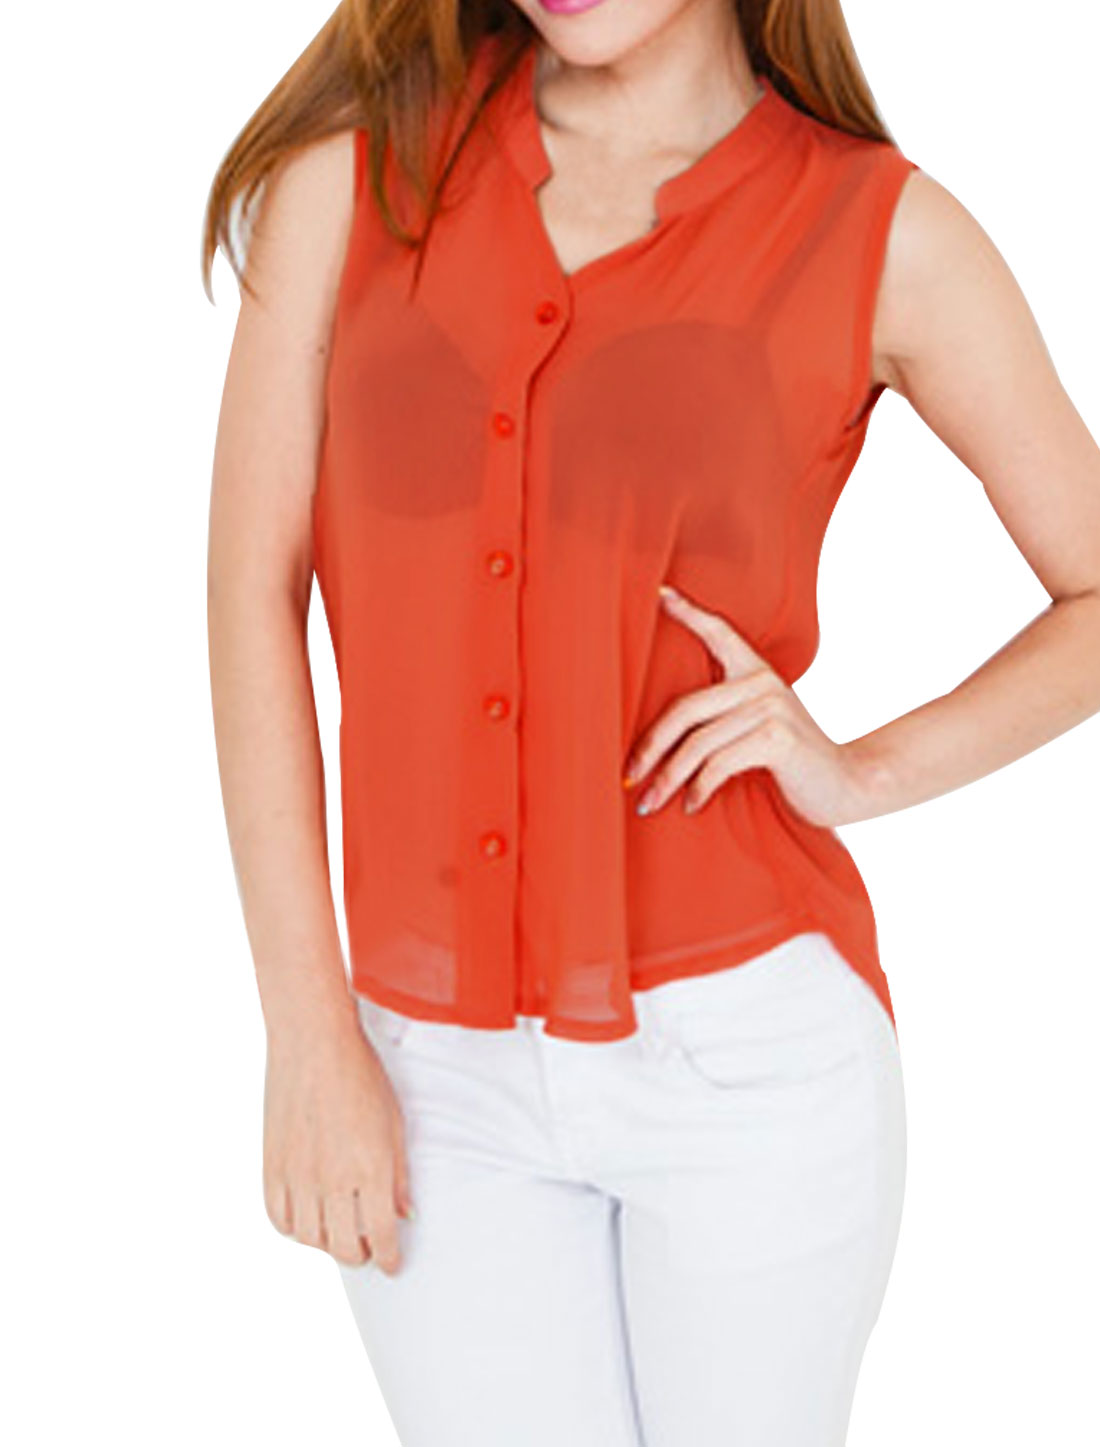 Women Stand Collar Button Closure NEWS Top Shirt Orange S